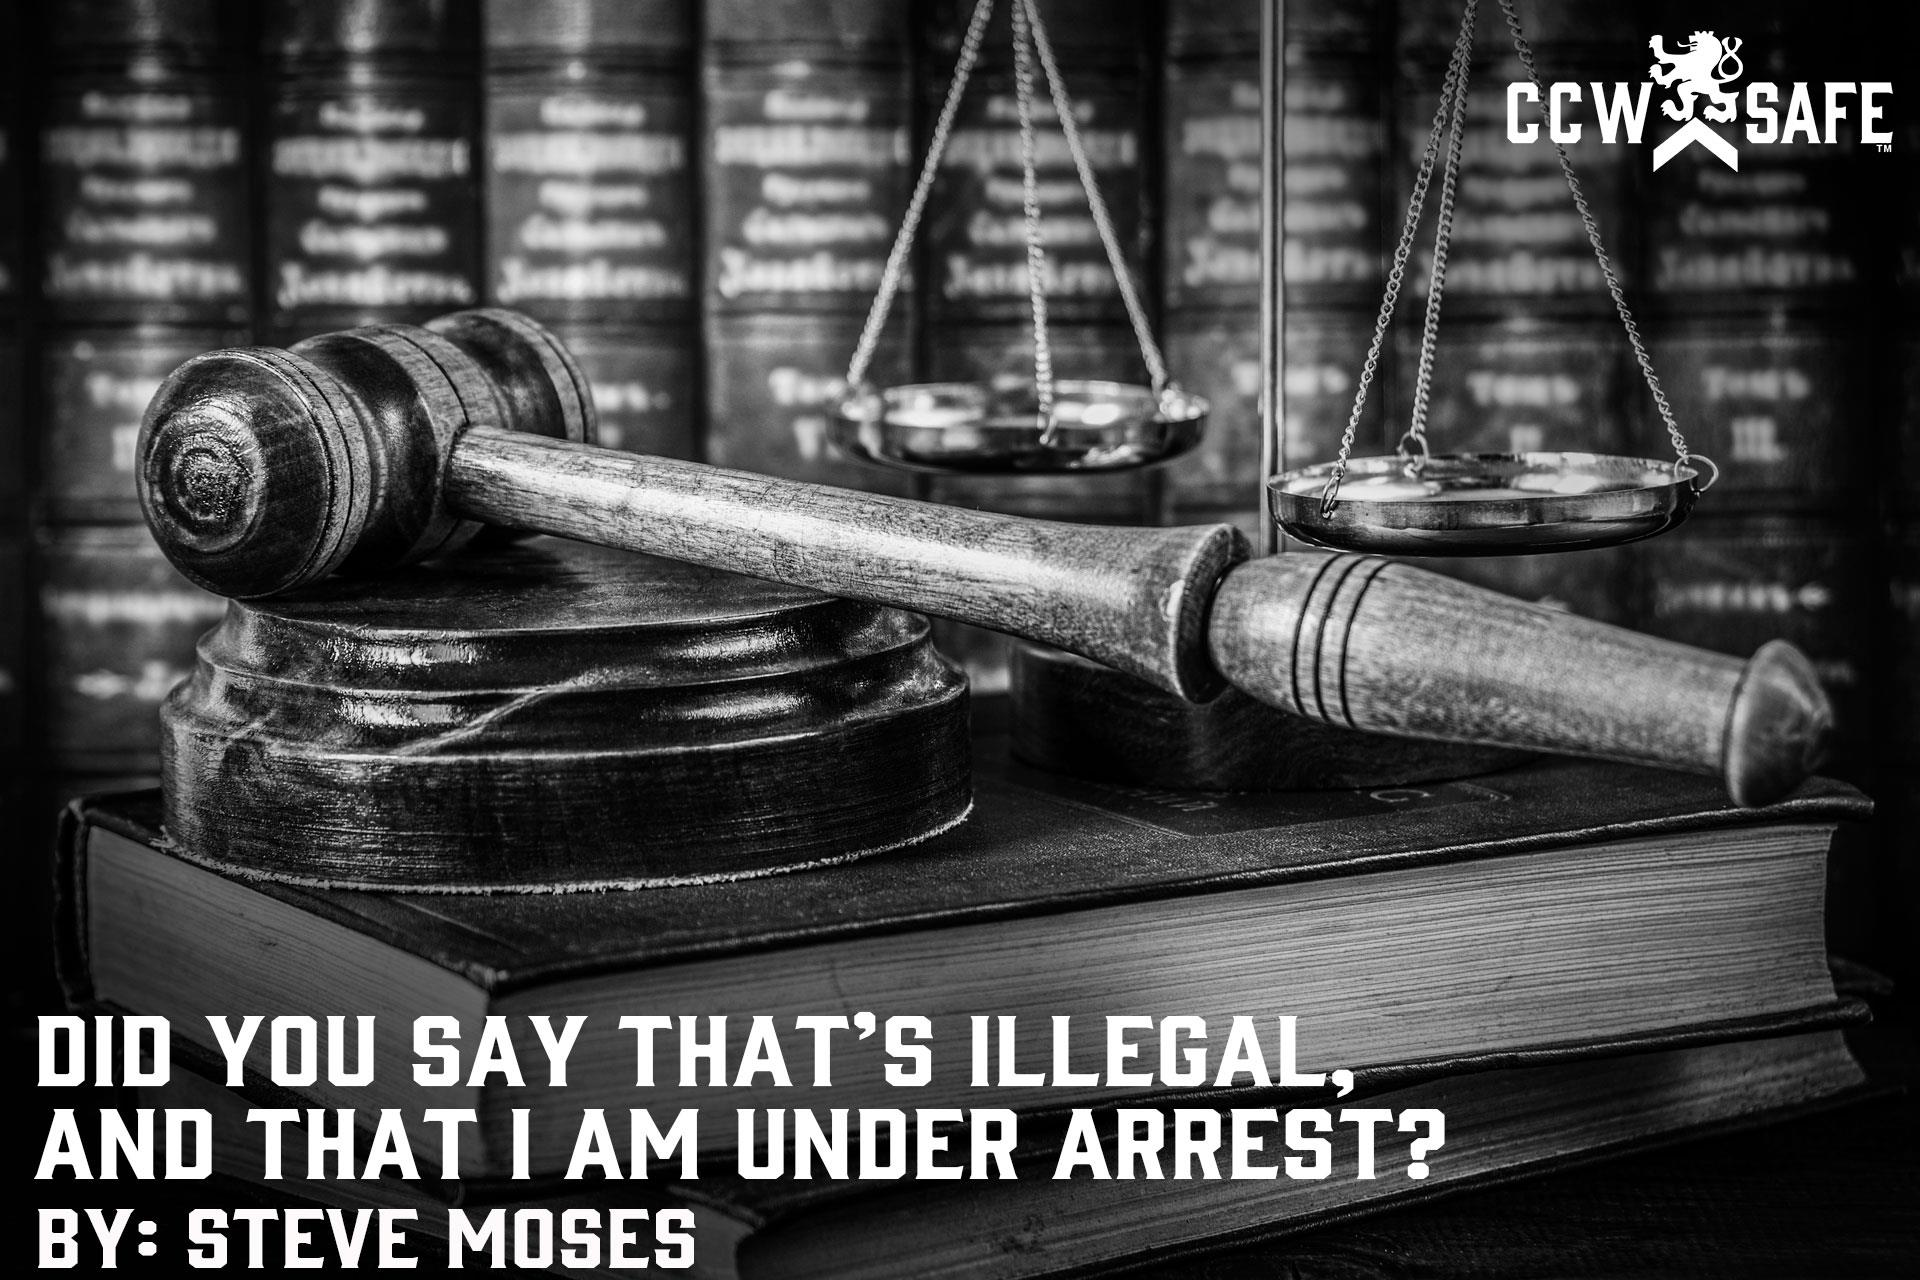 DID YOU SAY THAT'S ILLEGAL, AND THAT I AM UNDER ARREST?